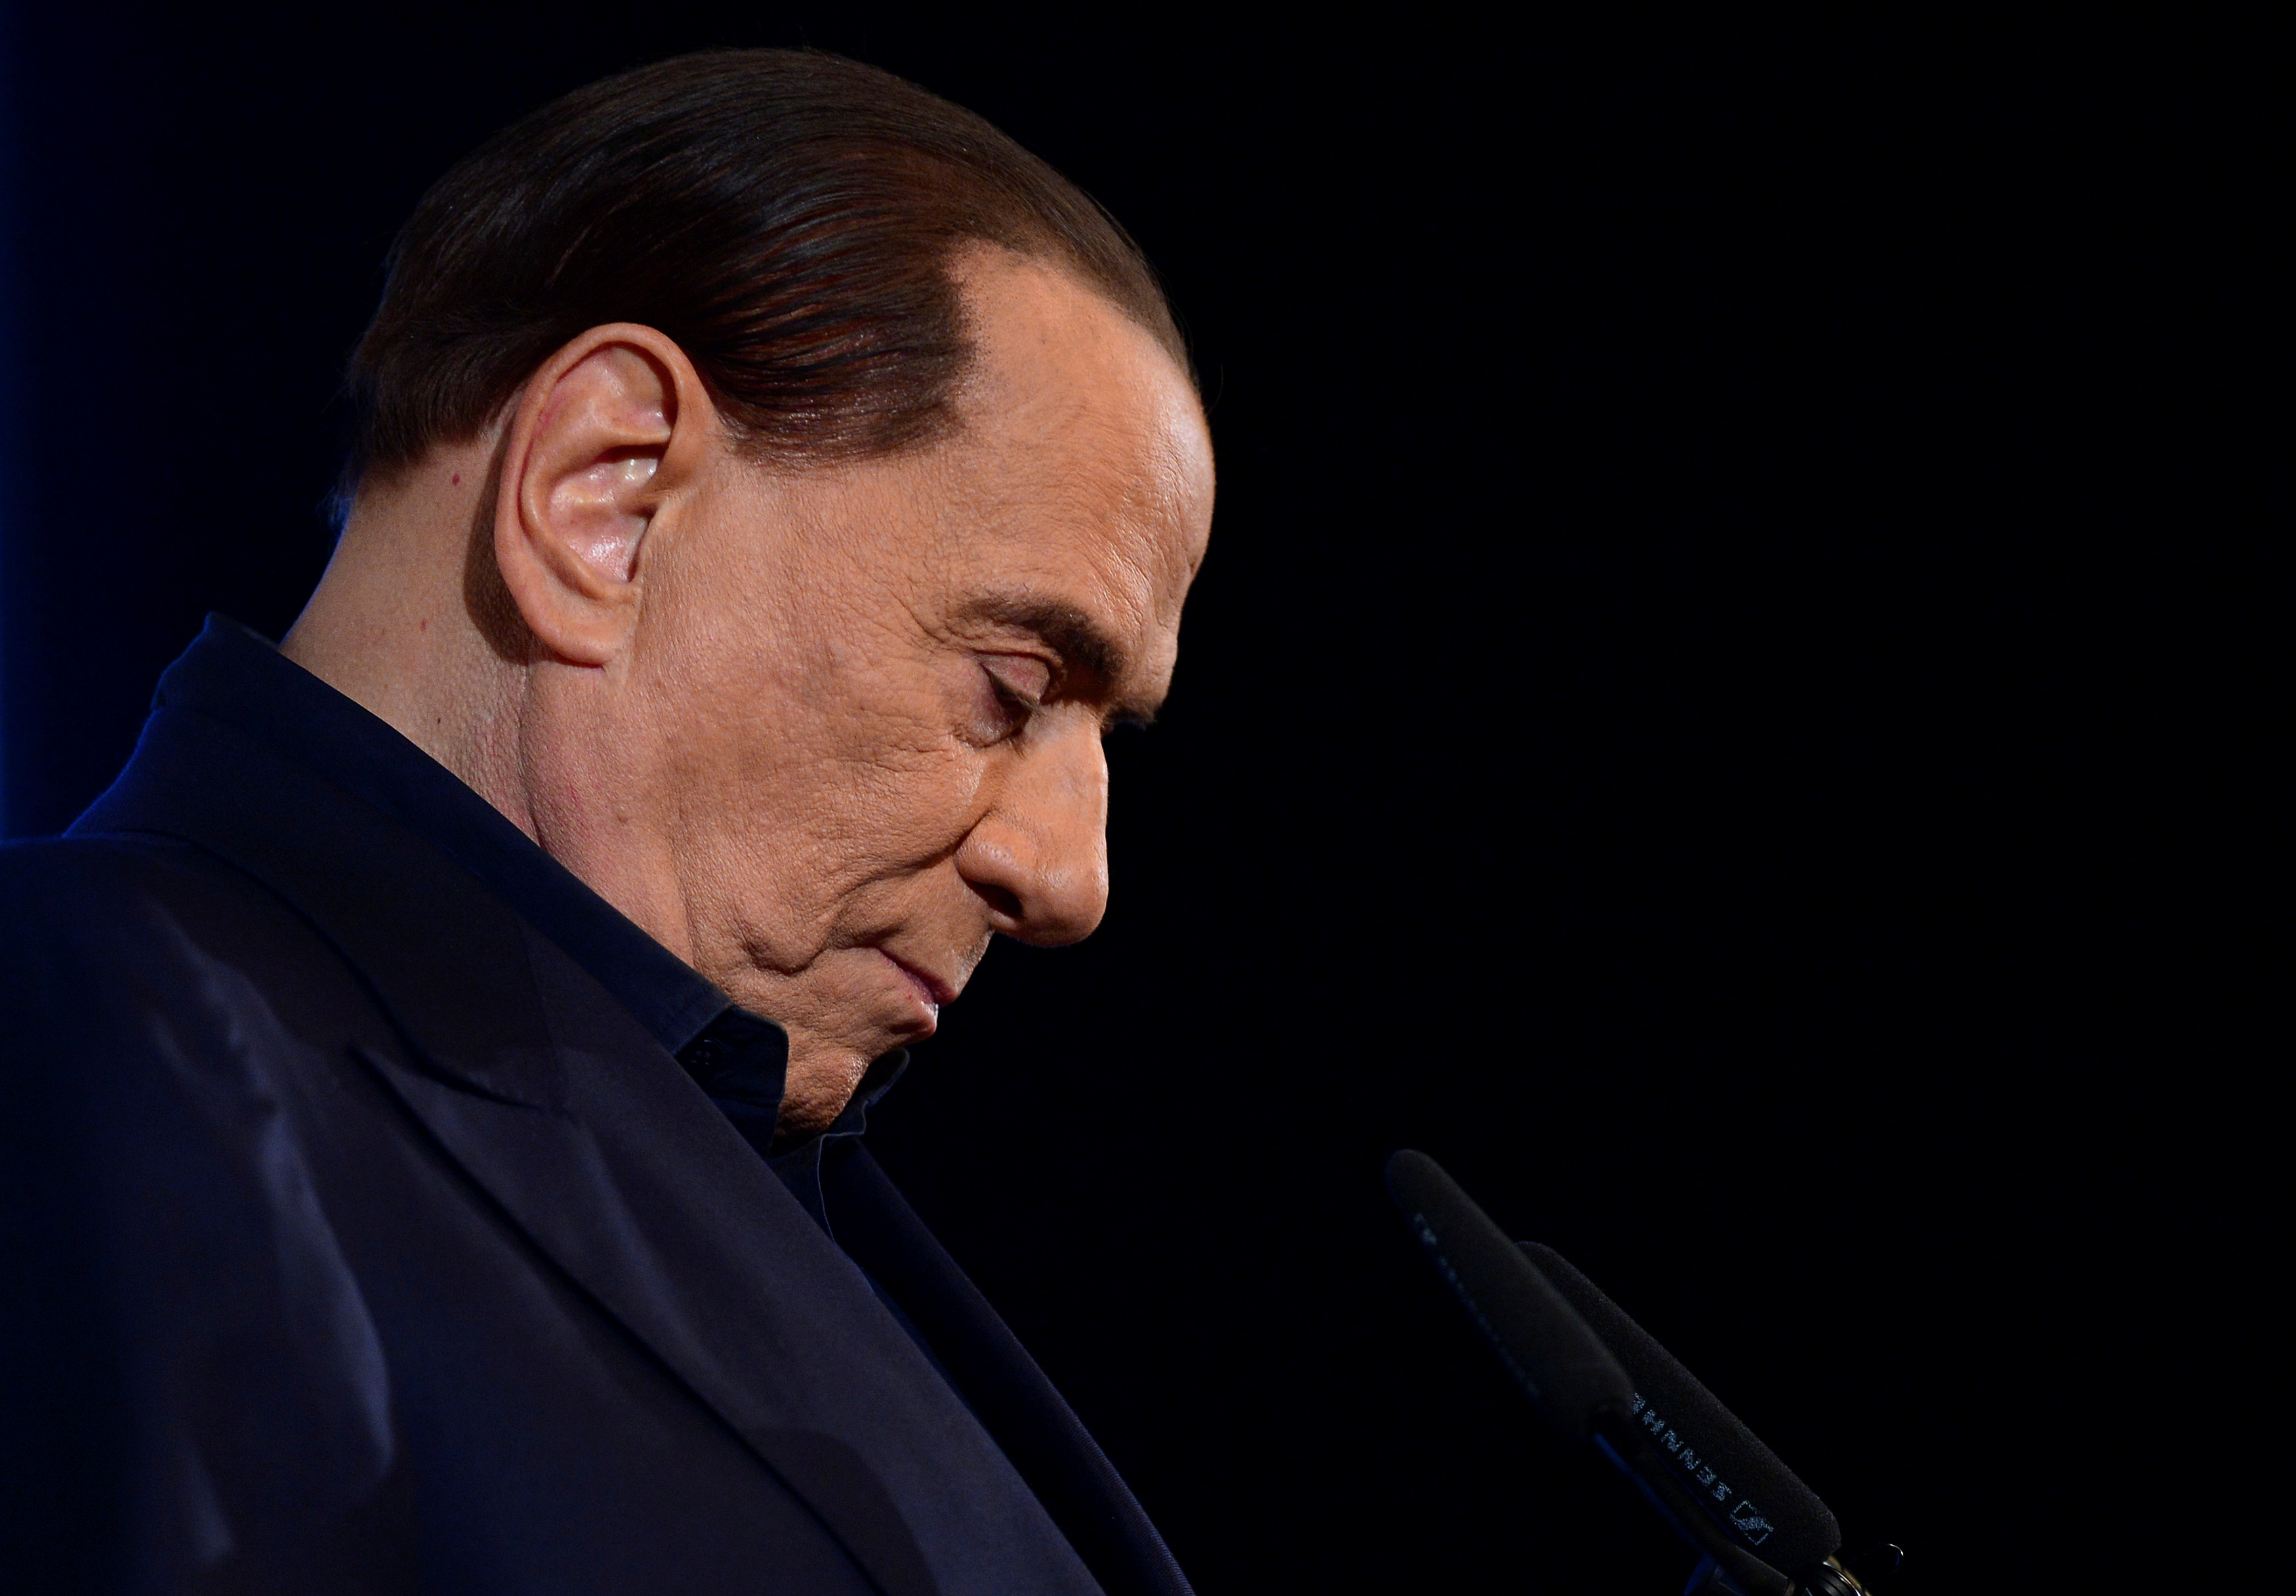 Italian leader of the centre-right party Forza Italia Silvio Berlusconi gestures as he speaks during a pre-election gathering in Milan